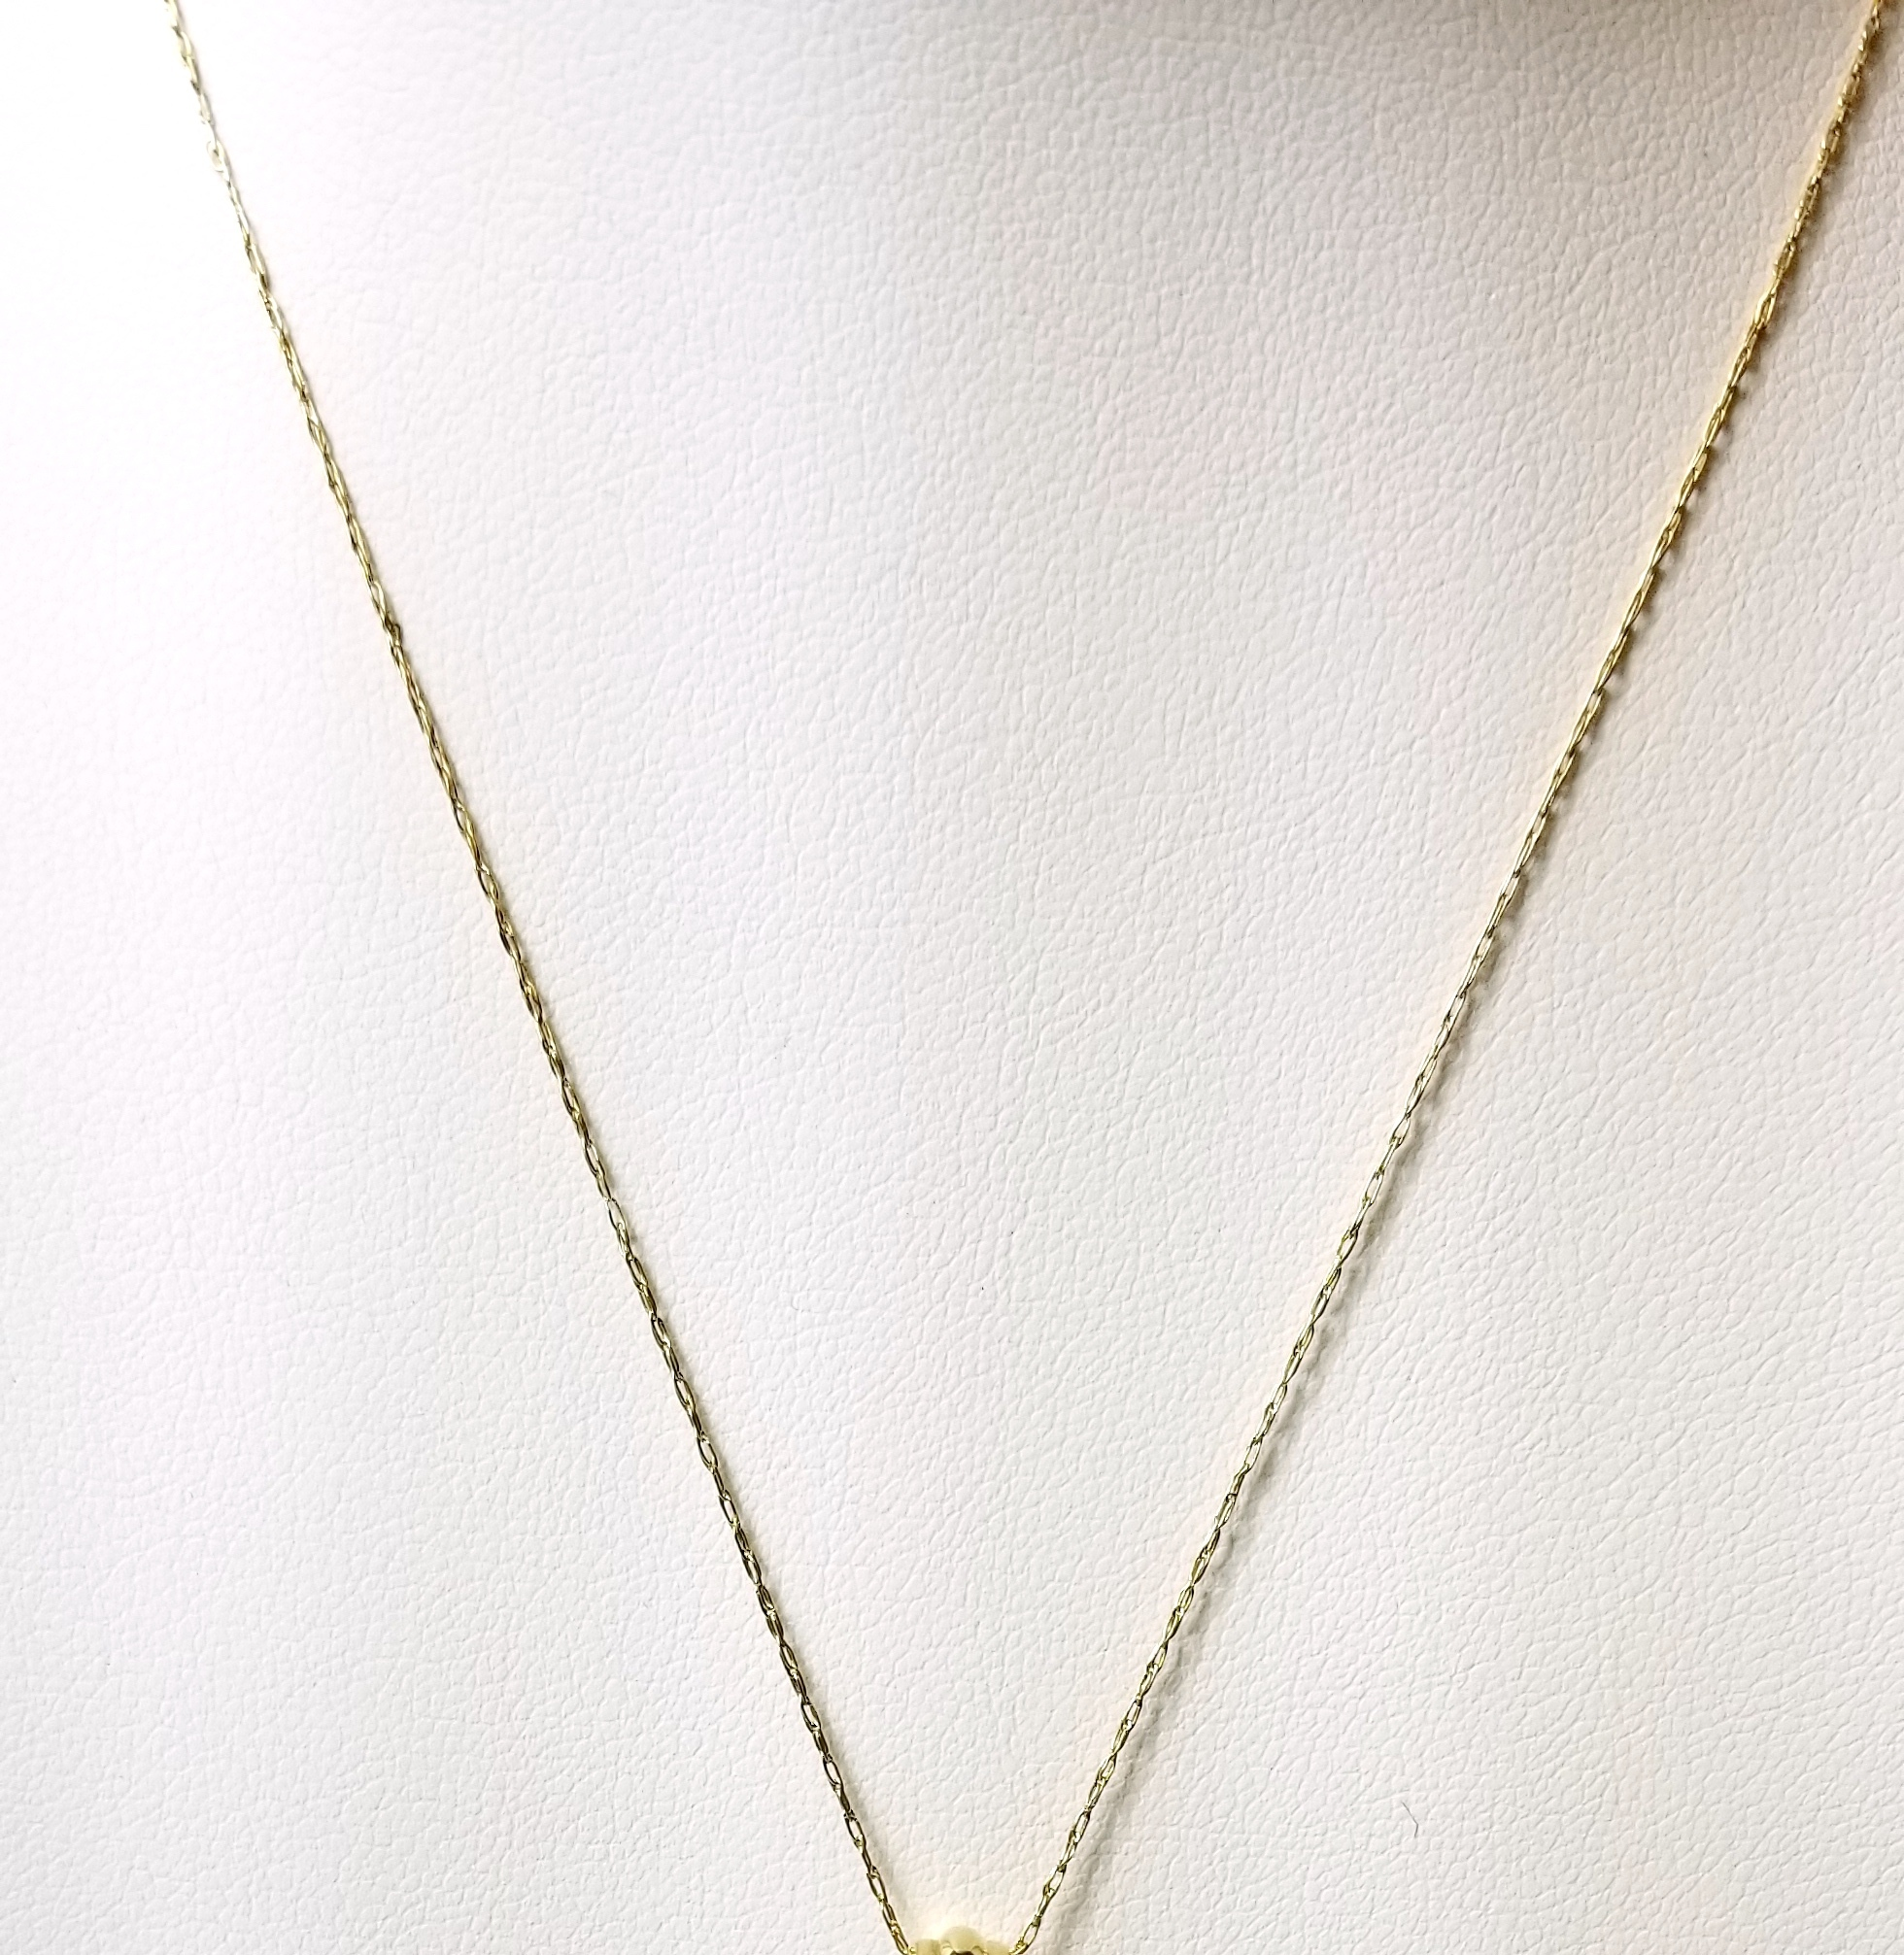 14K Yellow Gold .60g Double Links Chain 16